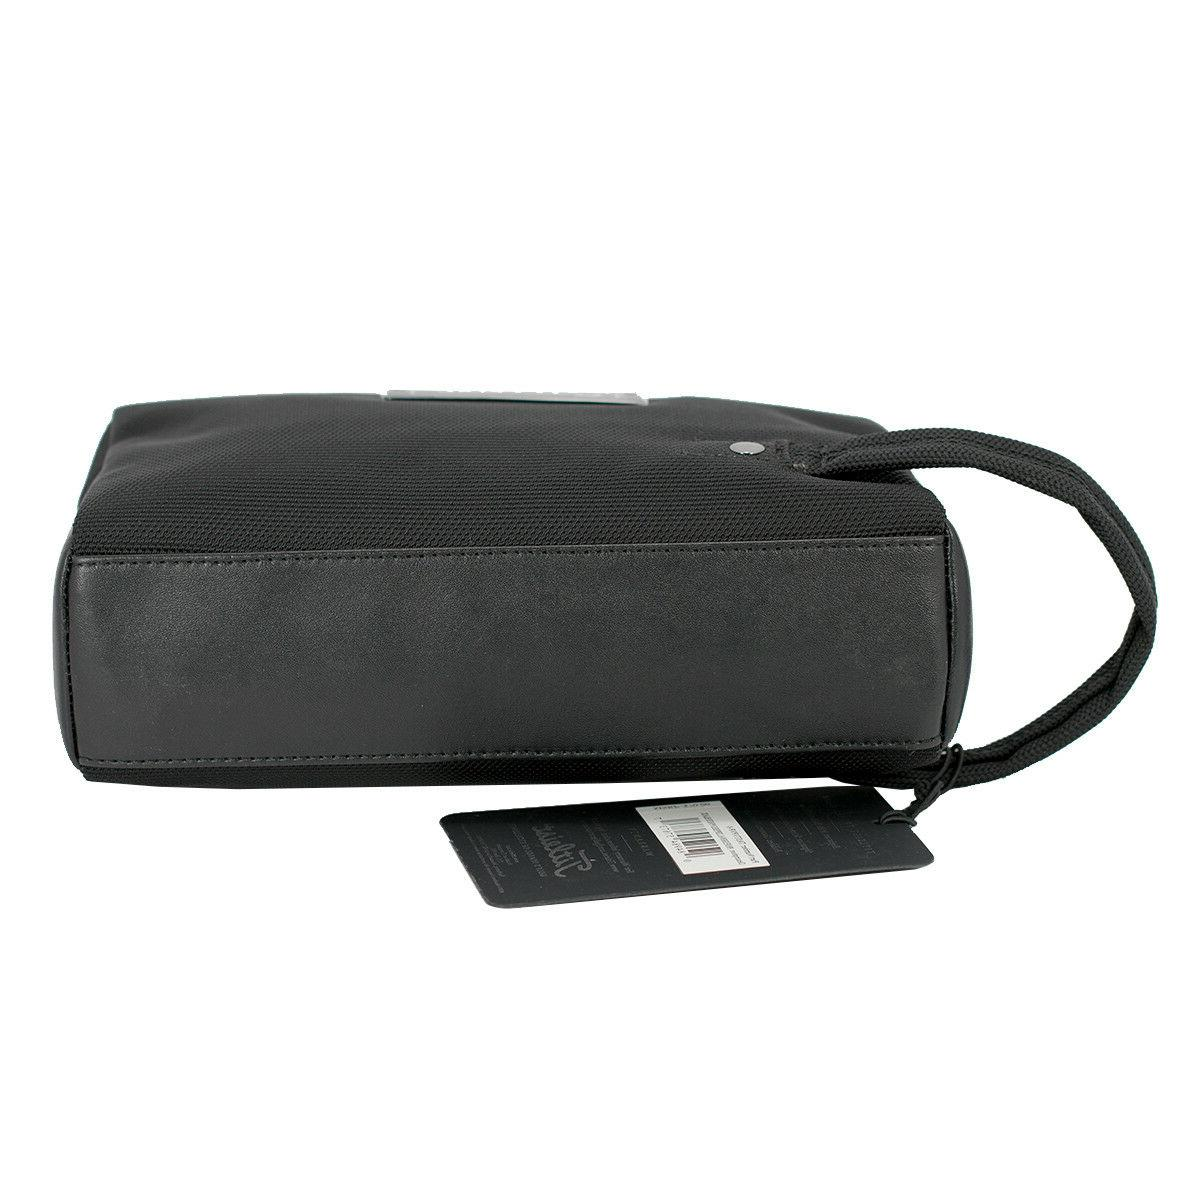 NEW Travel Gear Pouch